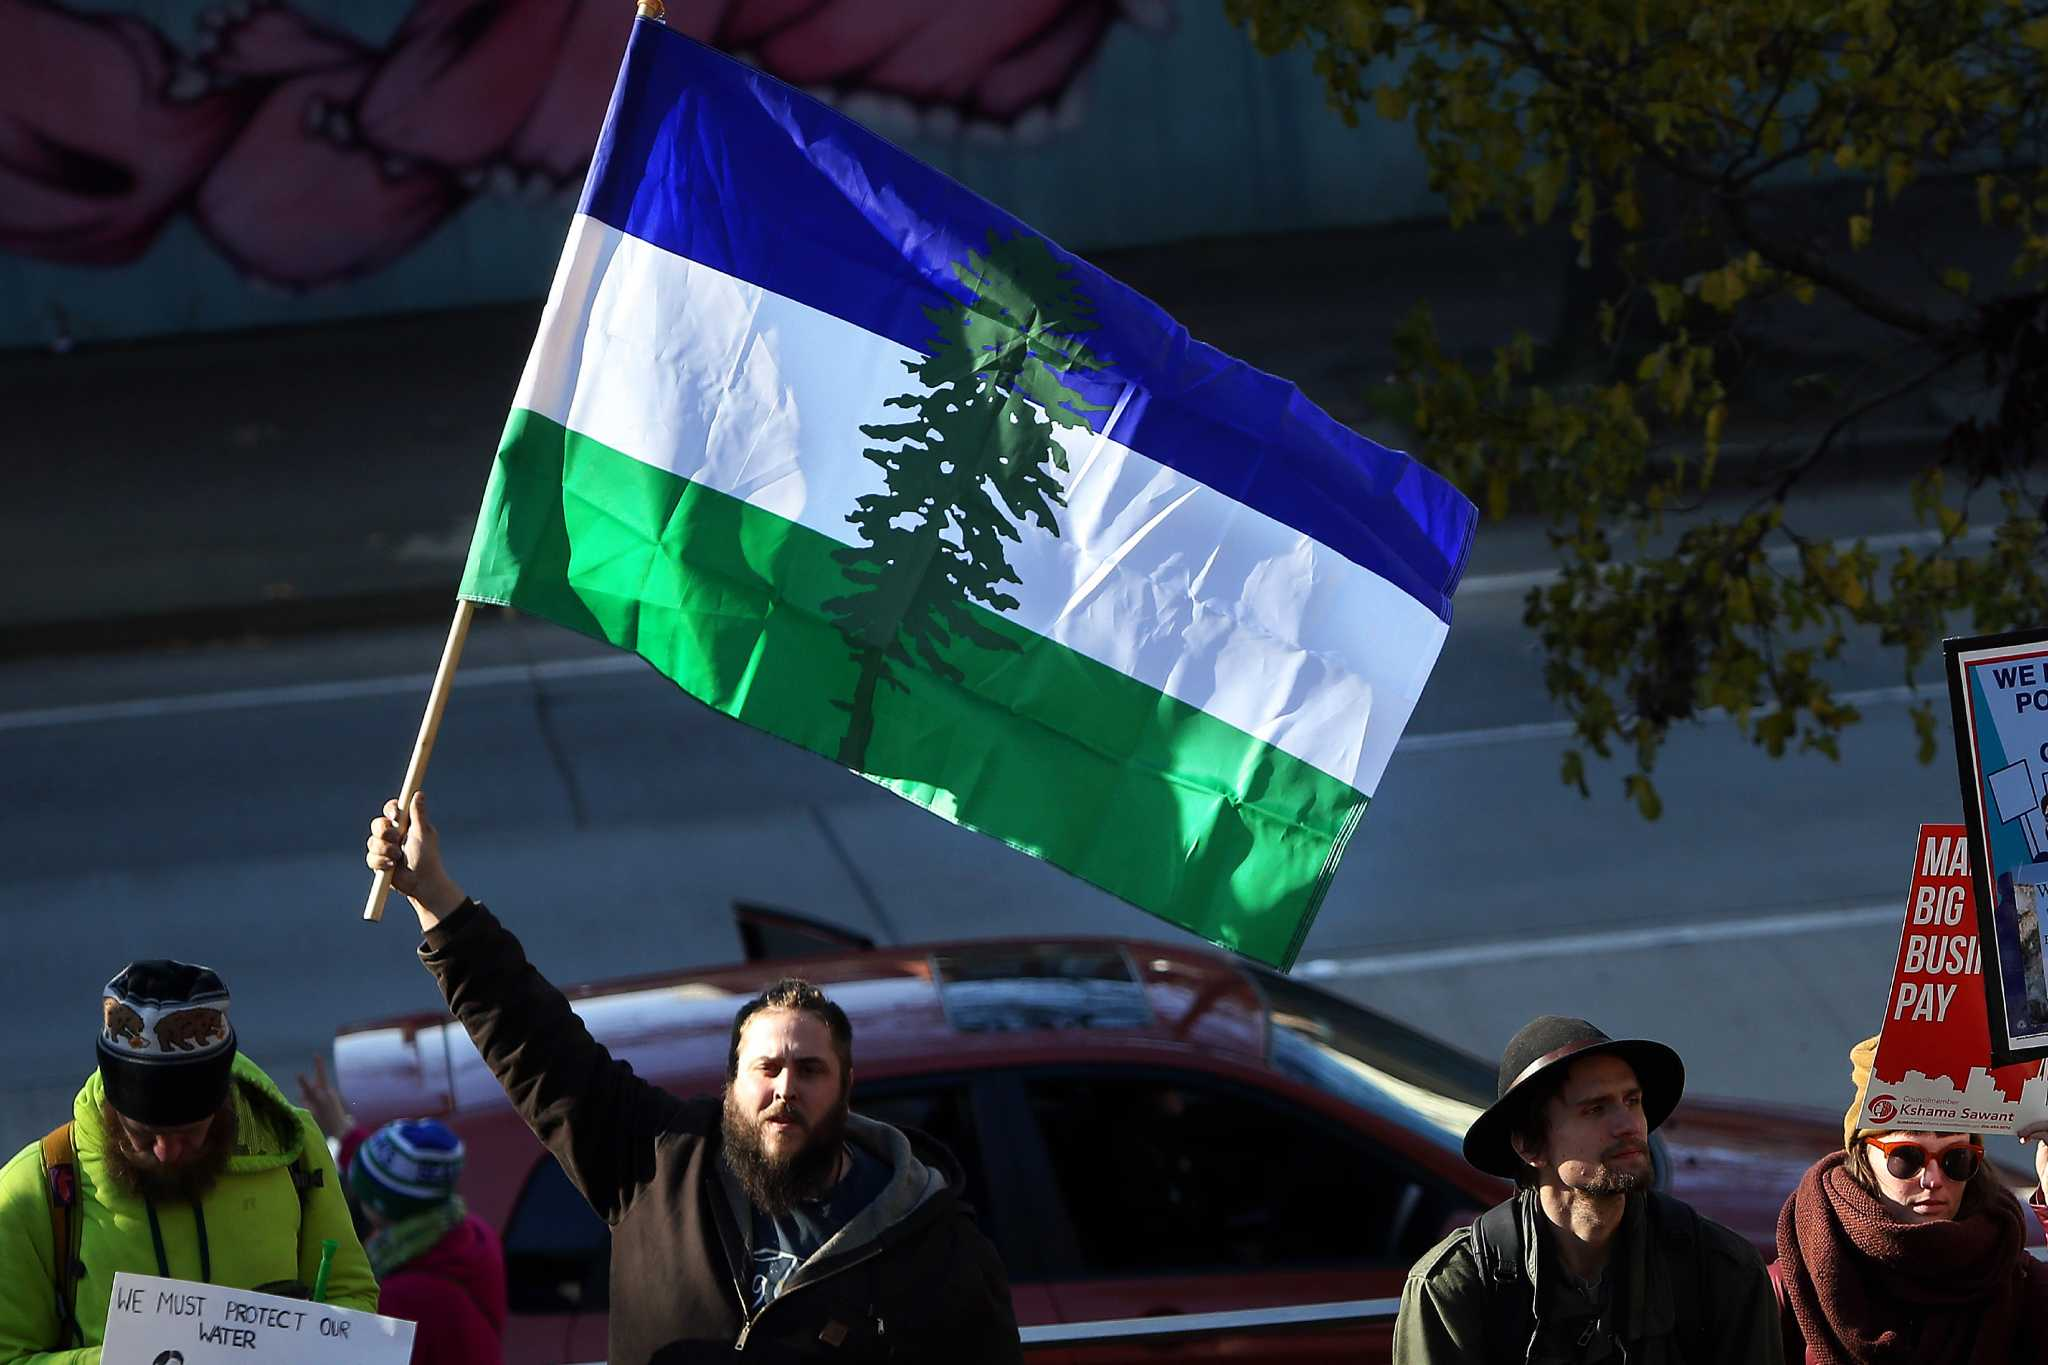 Could secession work for Washington? - NewsTimes